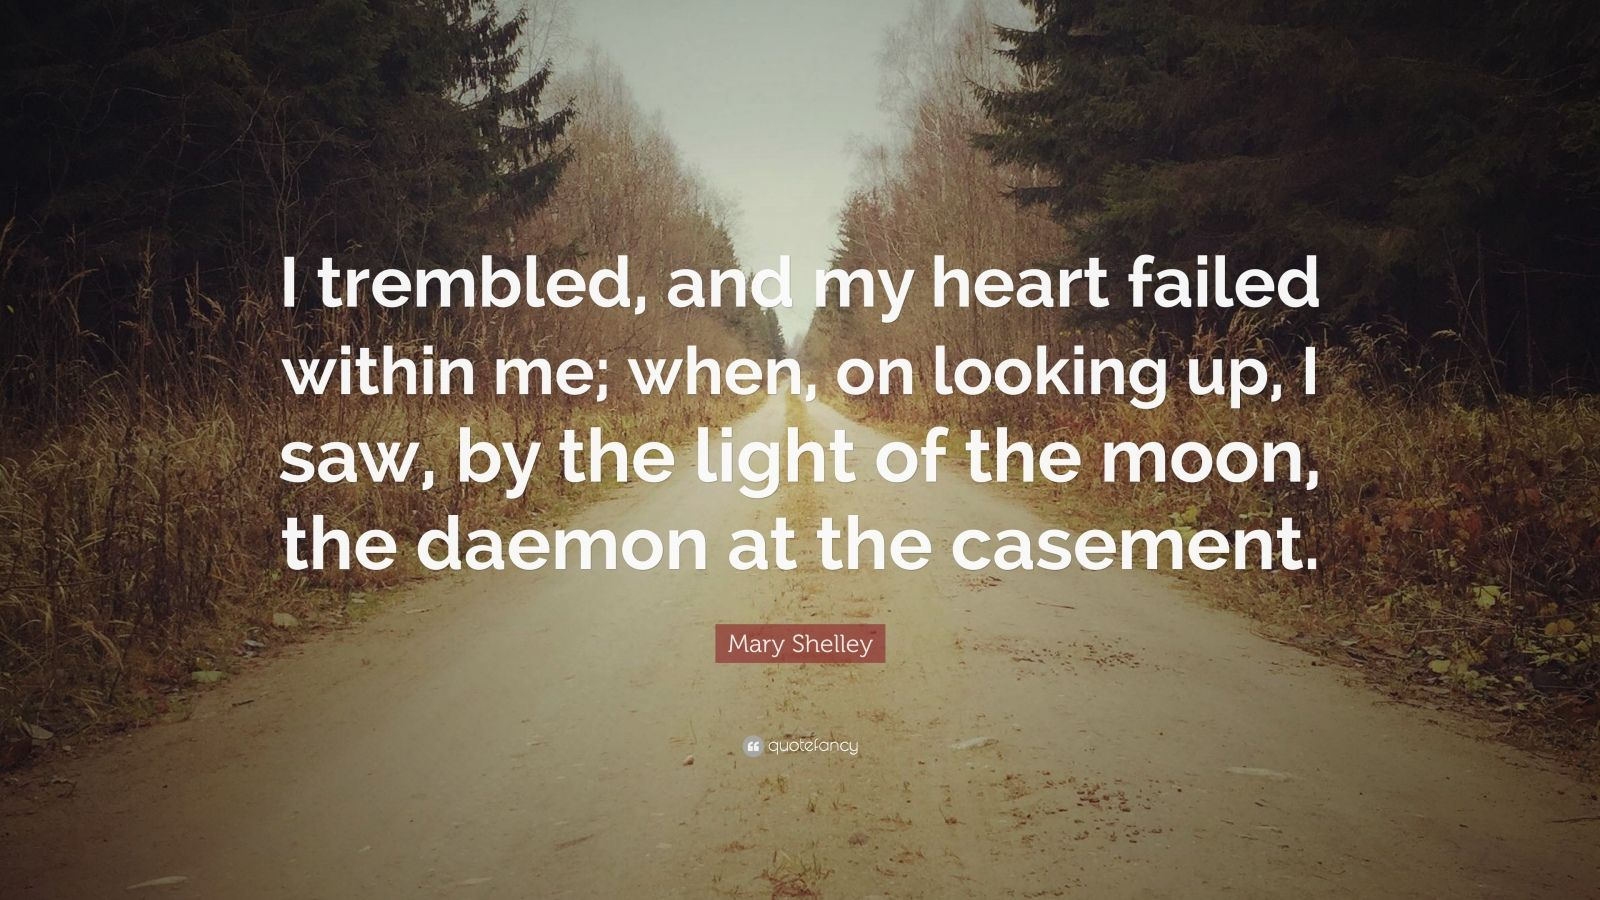 """Mary Shelley Quote: """"I trembled, and my heart failed within me; when, on looking up, I saw, by the light of the moon, the daemon at the casement."""""""